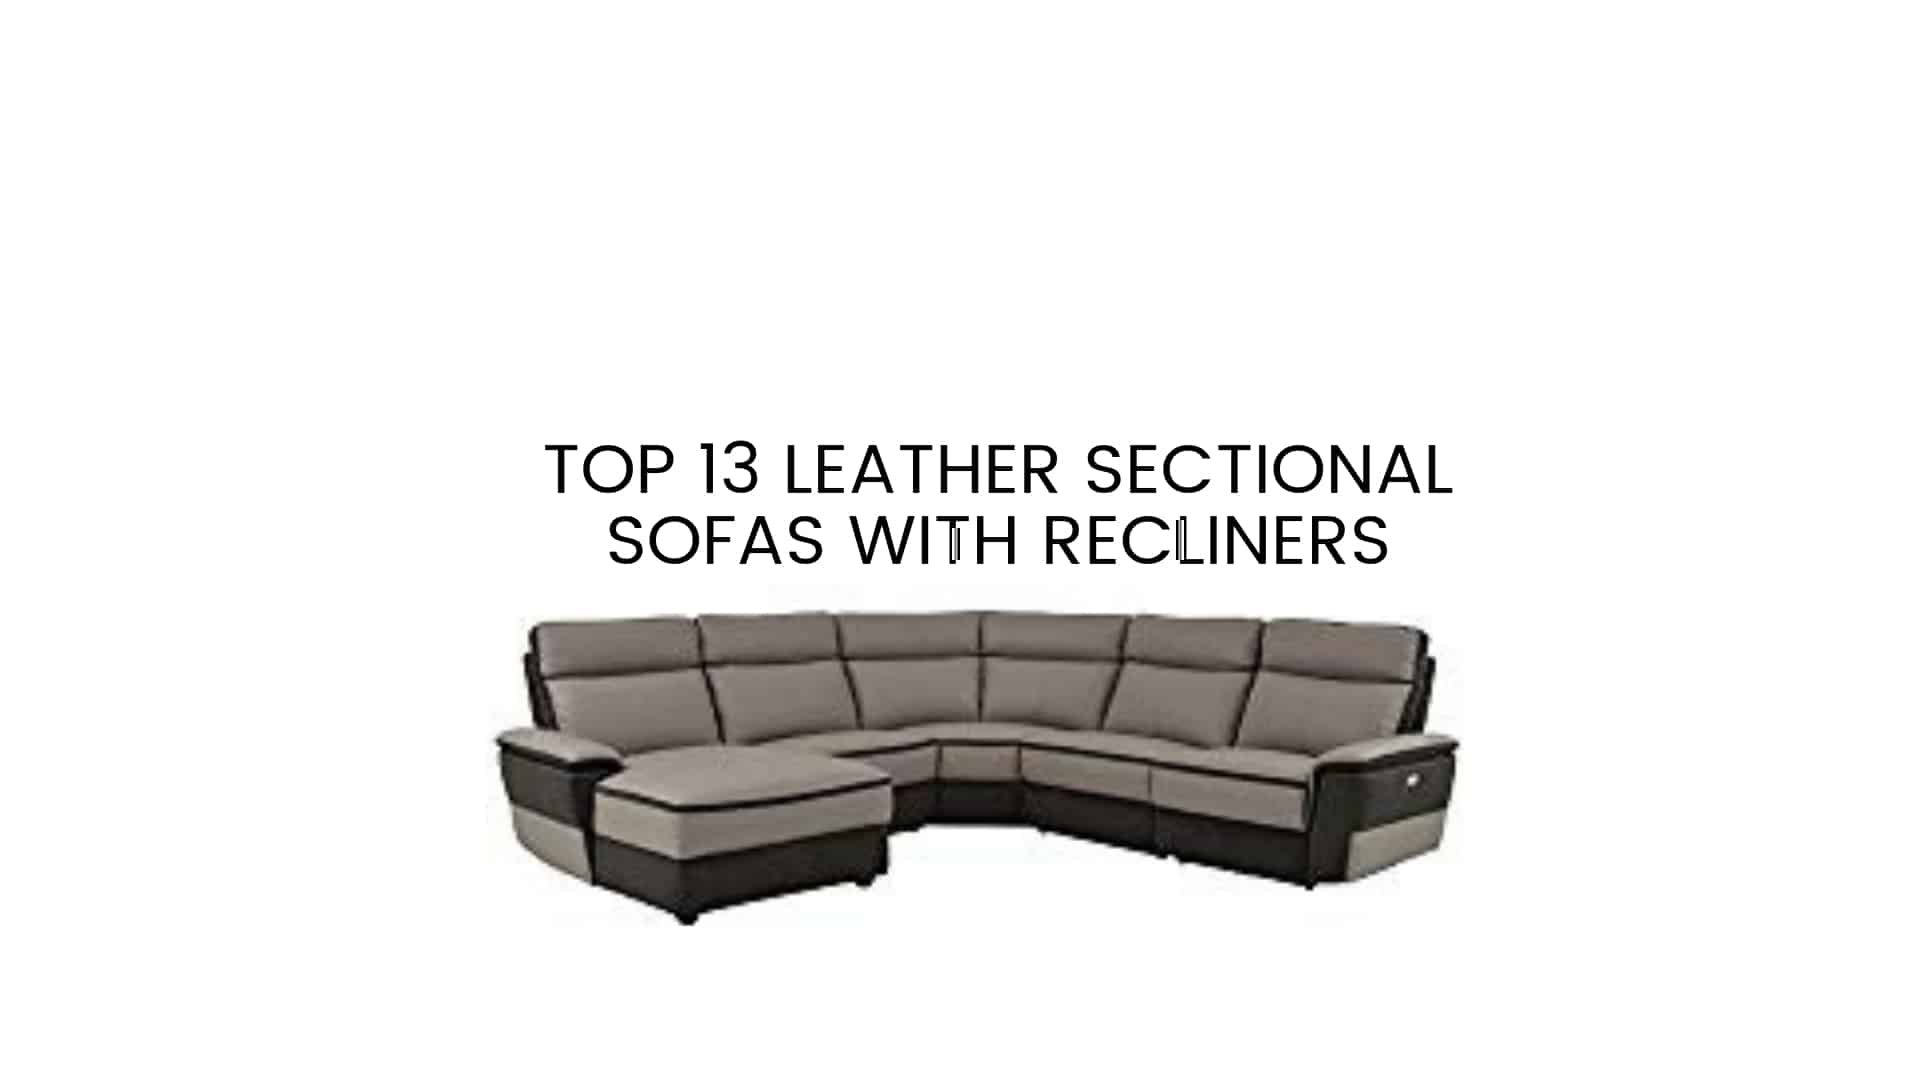 Top 13 Leather Sectional Sofas with Recliners - 2019 Reviews ...